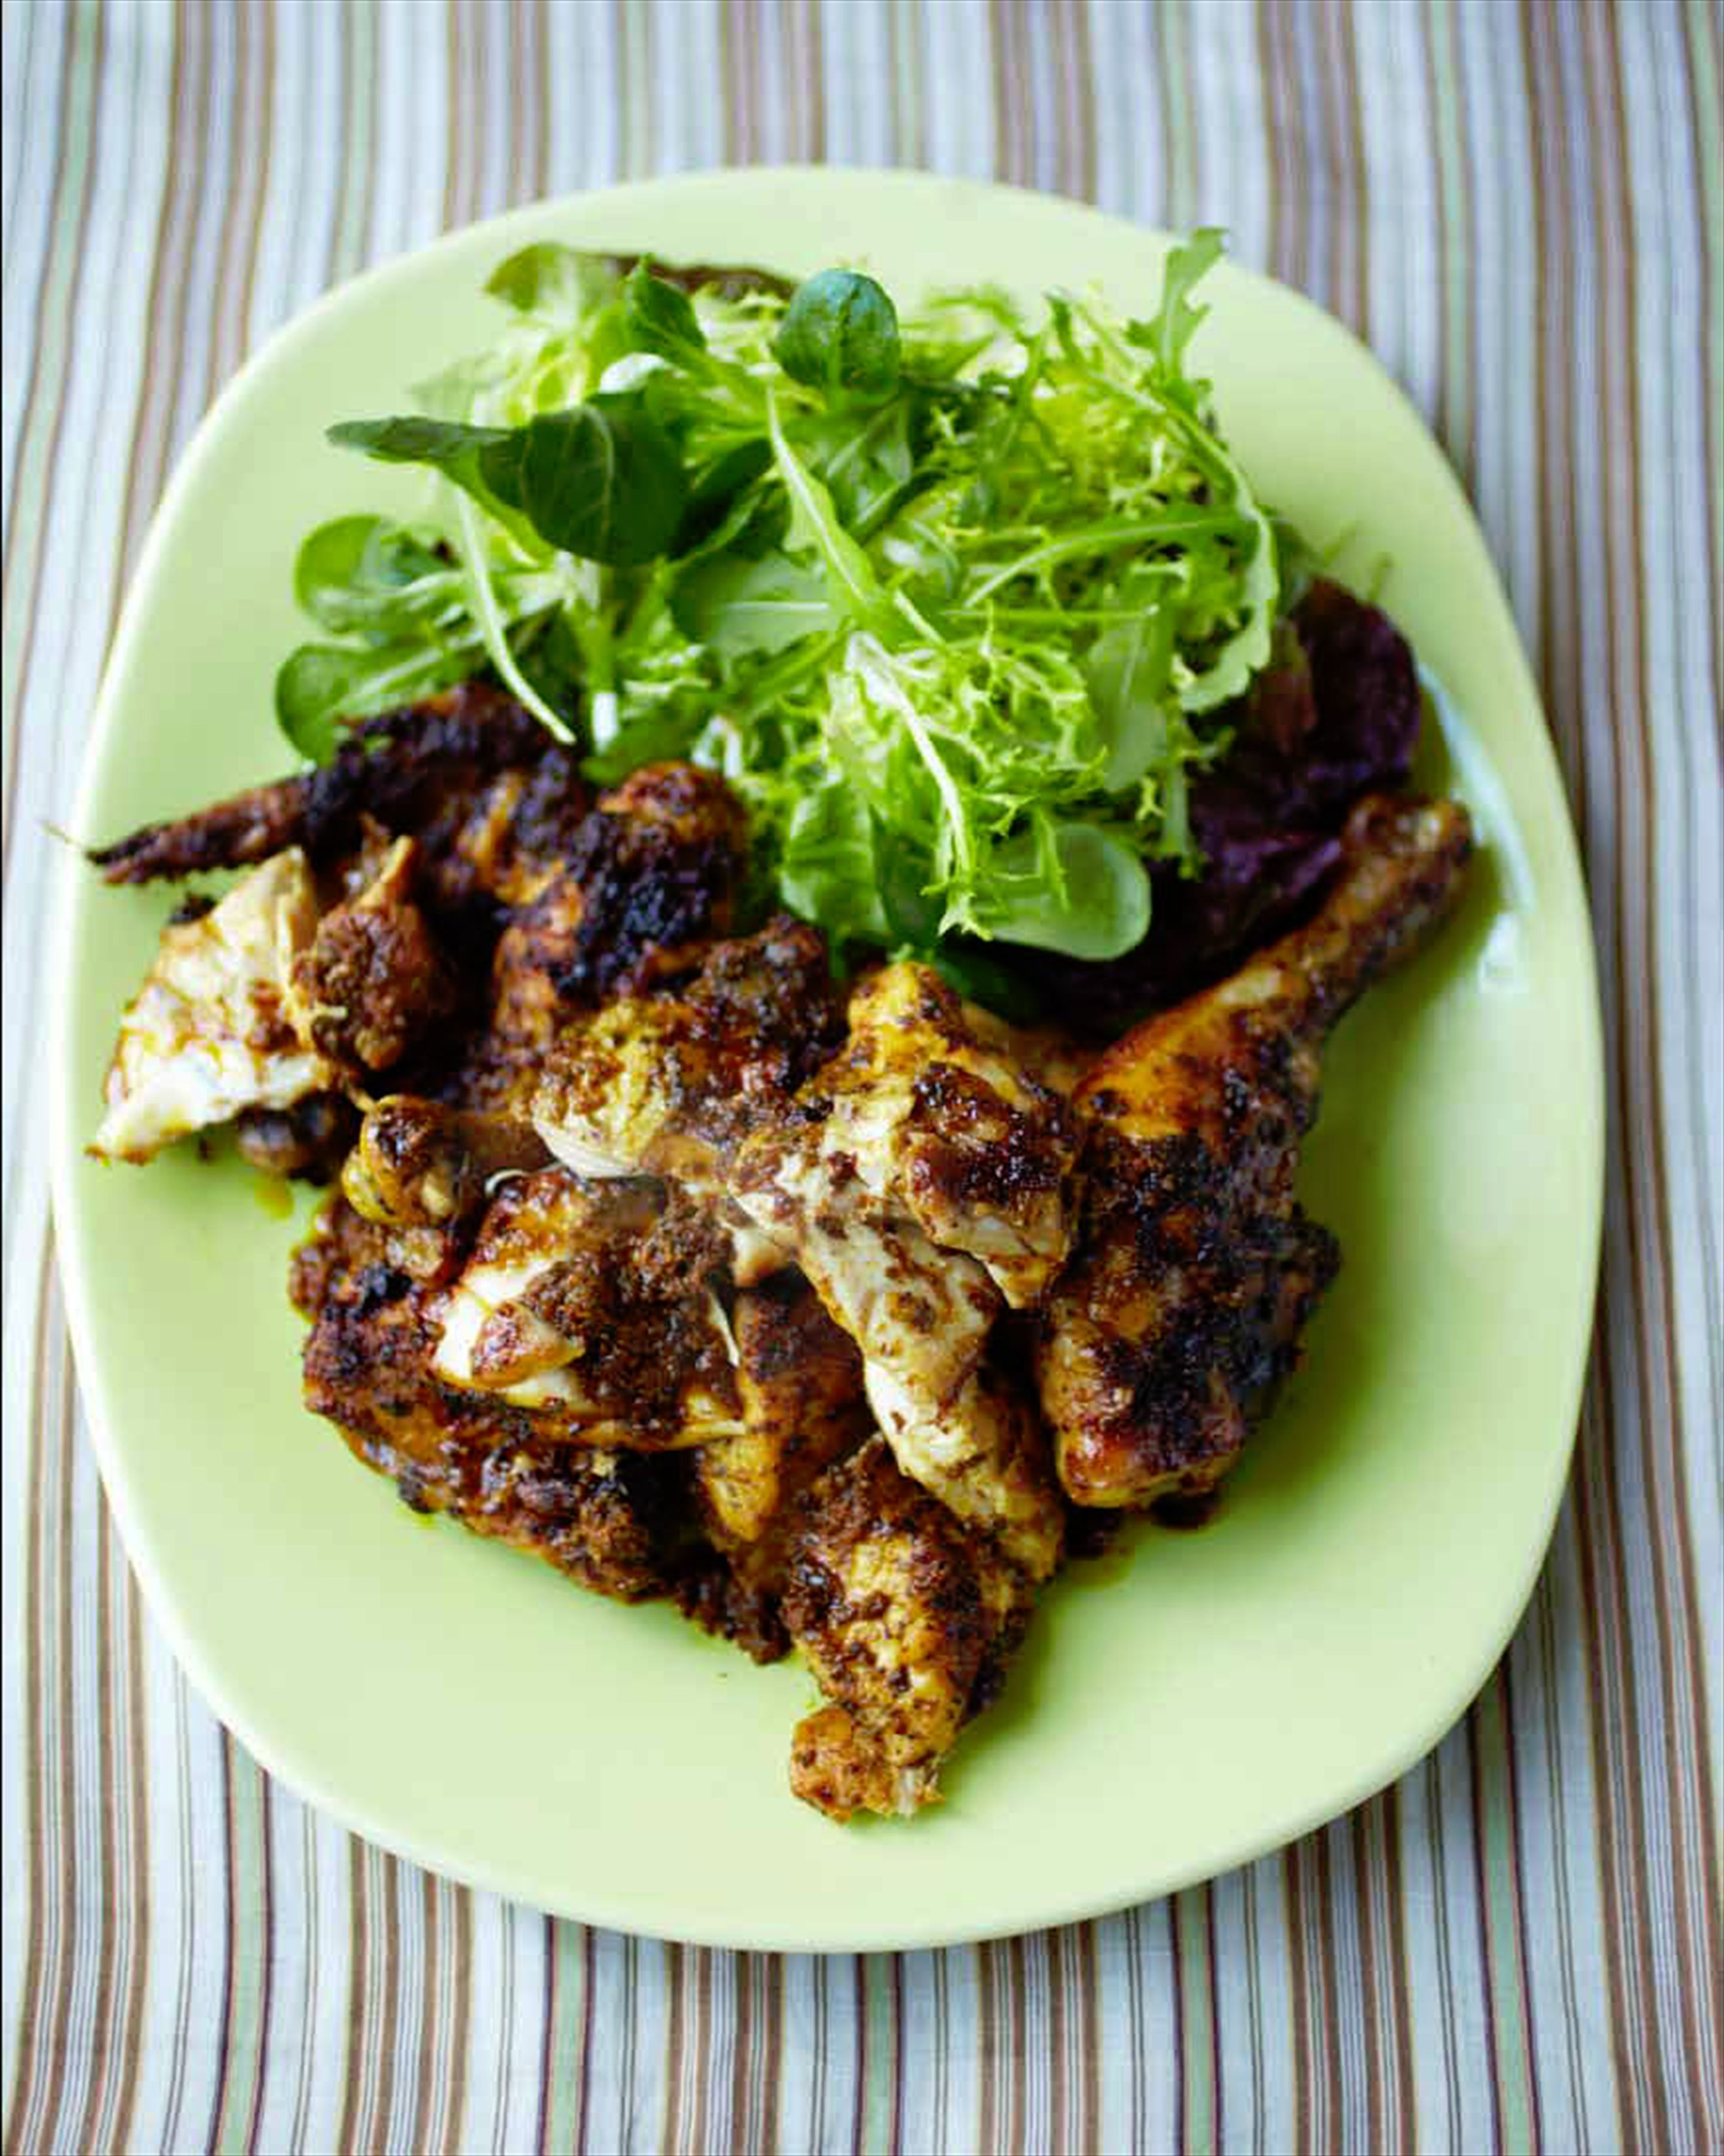 Mechoui-style roast chicken